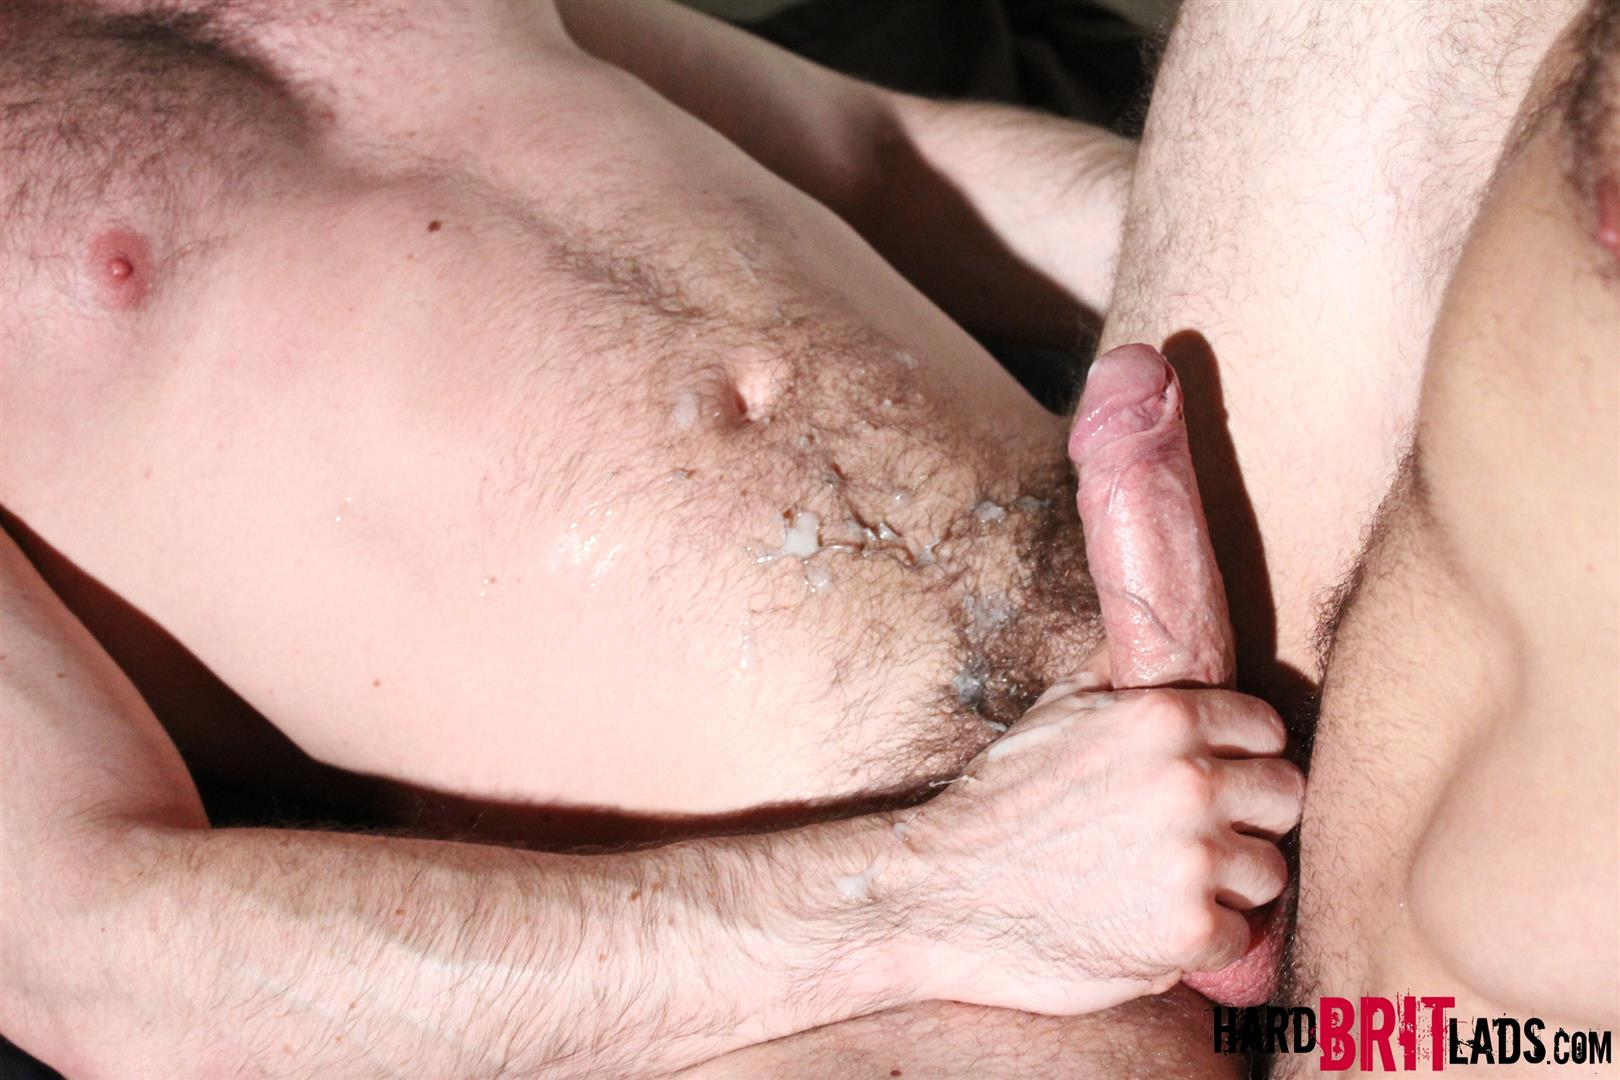 Hard-Brit-Lads-Craig-Daniel-Scott-Hunter-Hairy-Muscle-Hunks-With-Big-Uncut-Cocks-Fucking-Amateur-Gay-Porn-18 Hairy Muscle Hunks Fucking And Eating Cum From Big Uncut Cocks